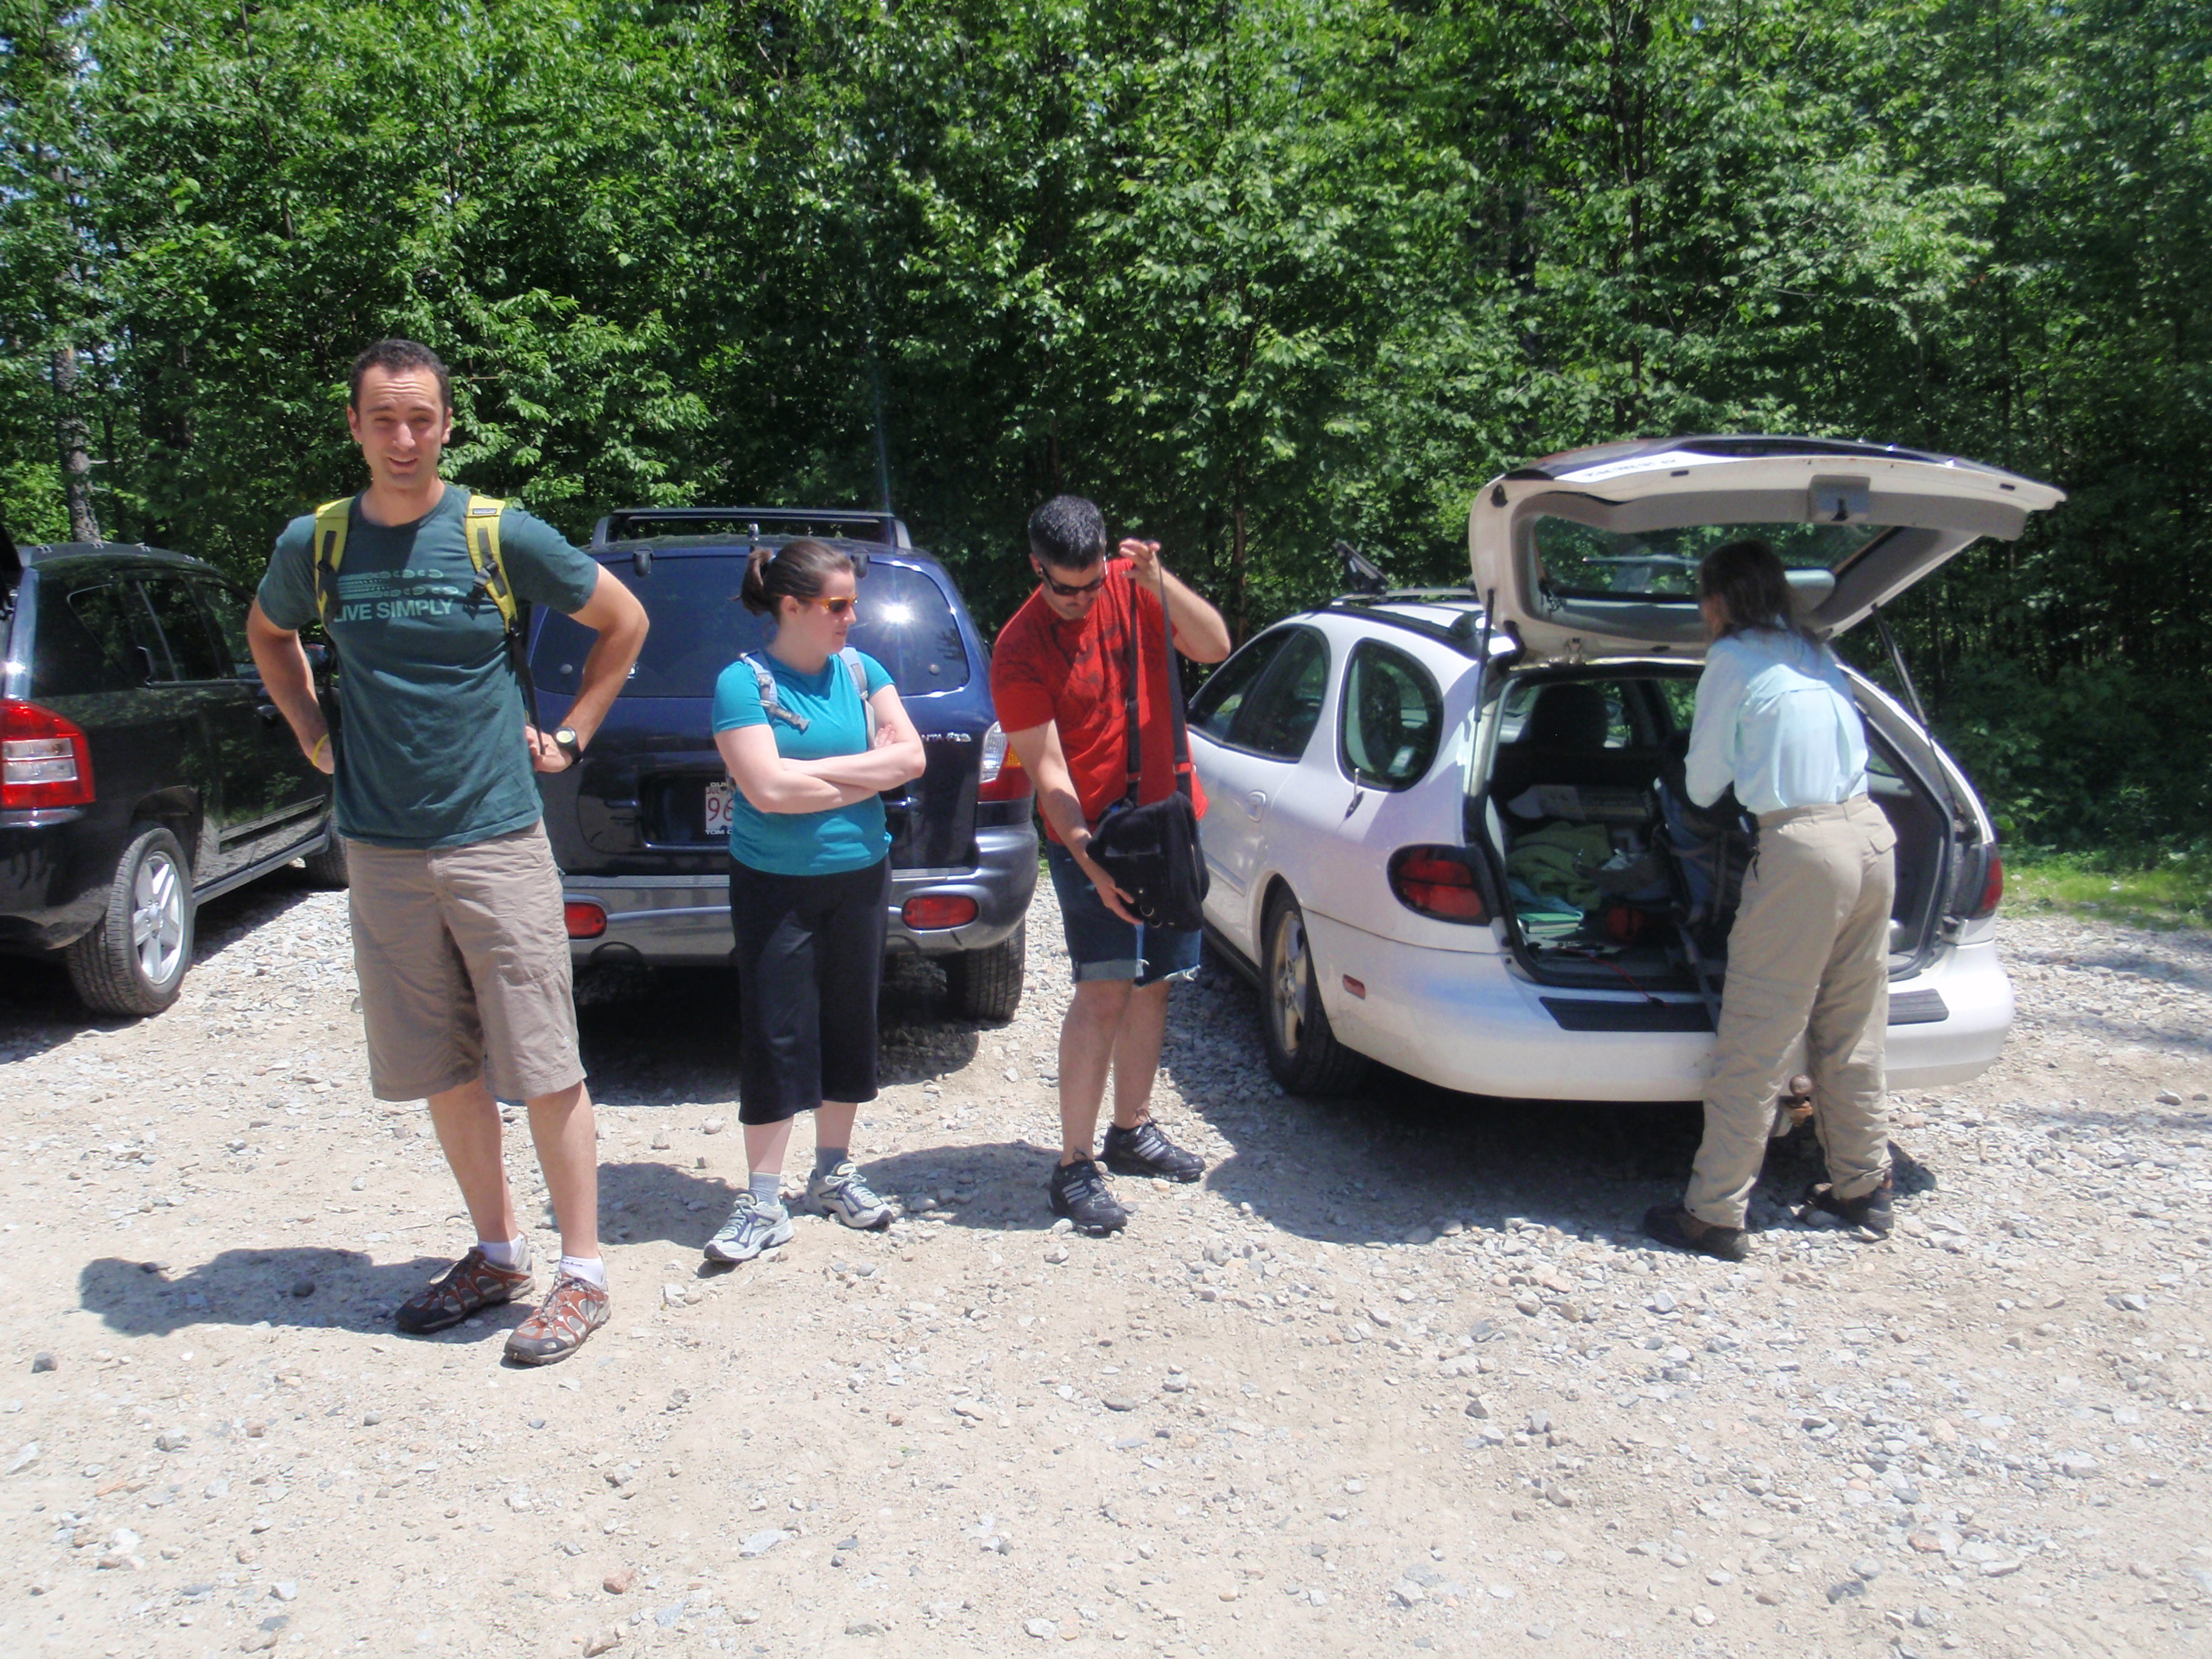 We drove up to the Black Cap Trailhead for our field portion